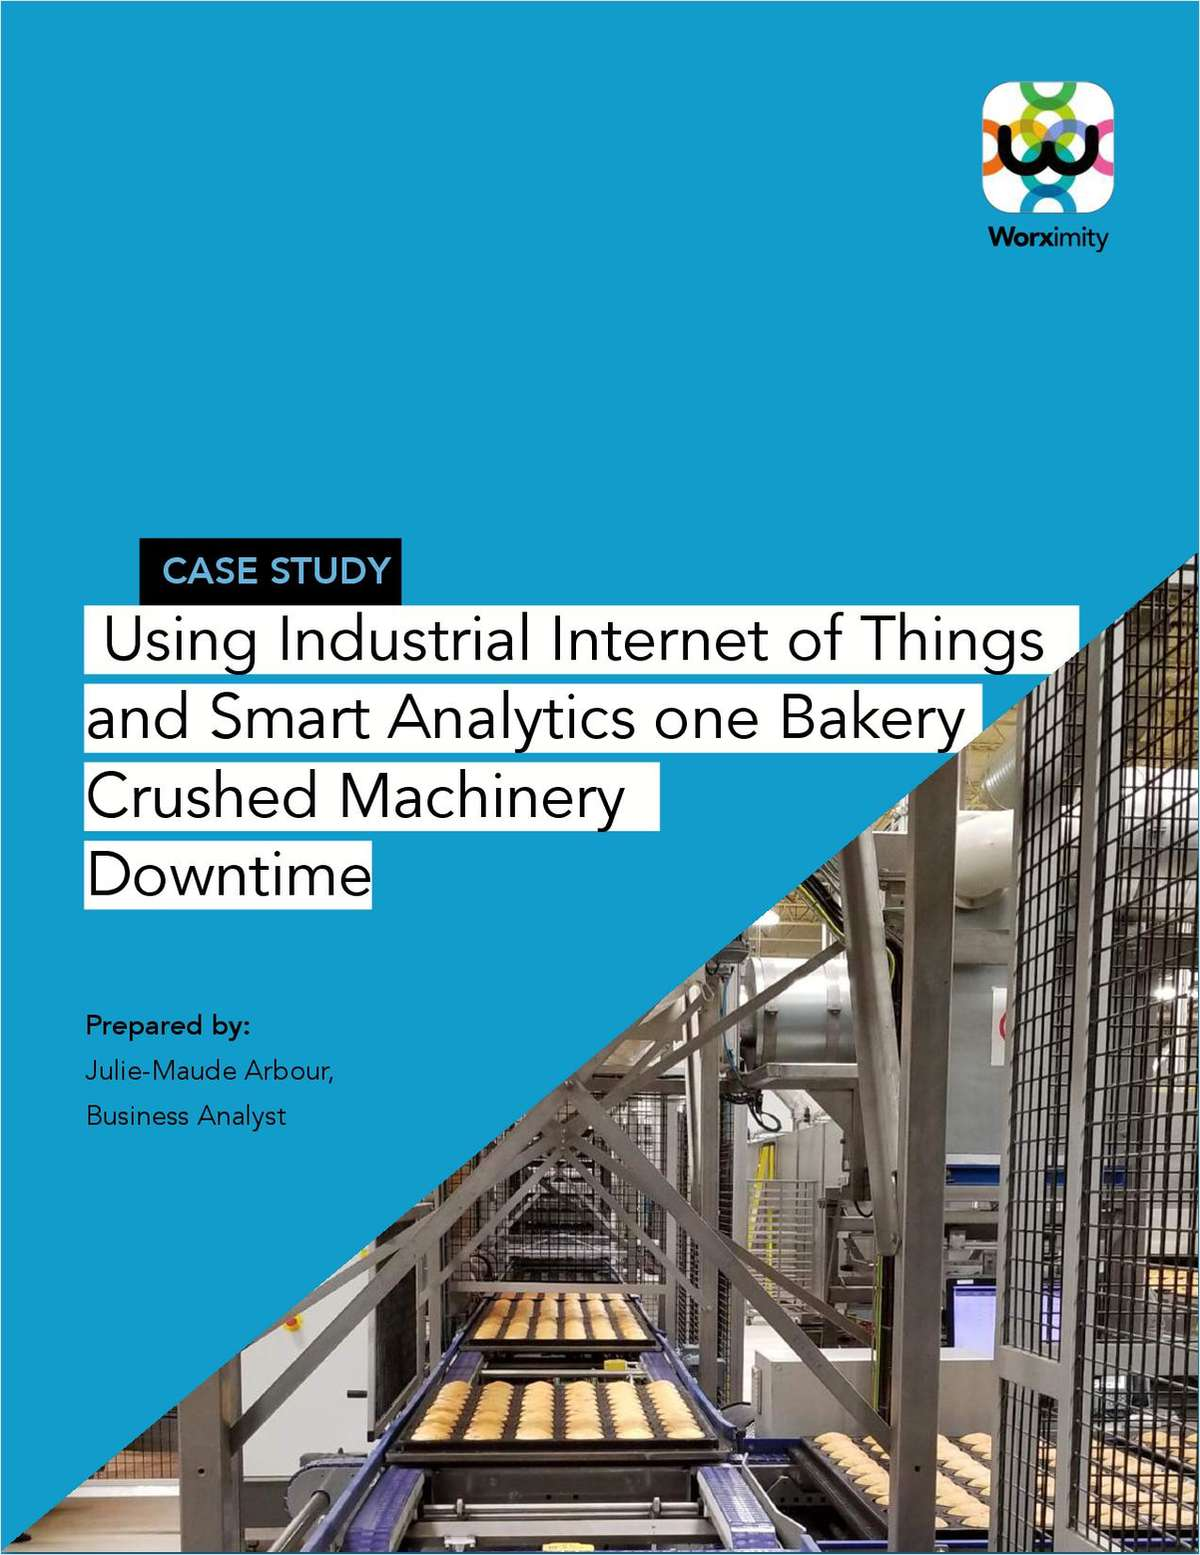 Using Industrial Internet of Things and Smart Analytics one Bakery Crushed Machinery Downtime